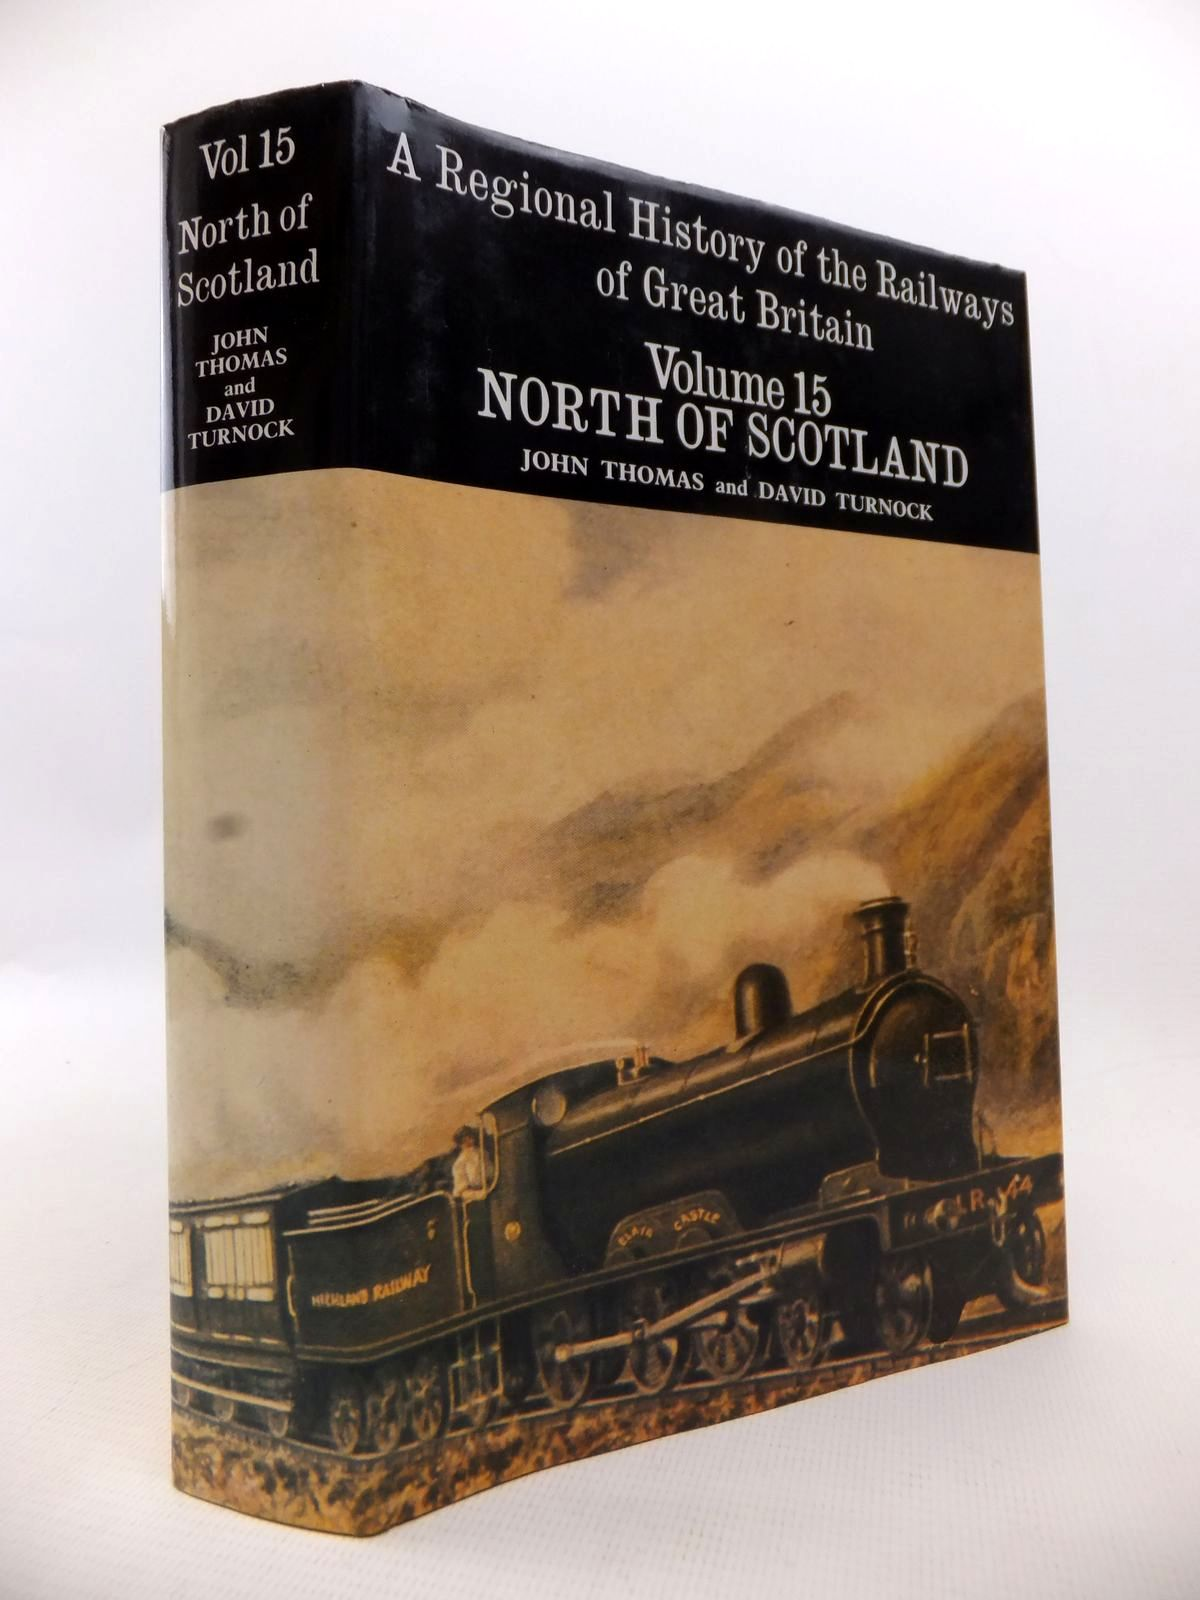 Photo of A REGIONAL HISTORY OF THE RAILWAYS OF GREAT BRITAIN VOLUME XV THE NORTH OF SCOTLAND written by Thomas, John<br />Turnock, D. published by David St John Thomas (STOCK CODE: 1813507)  for sale by Stella & Rose's Books